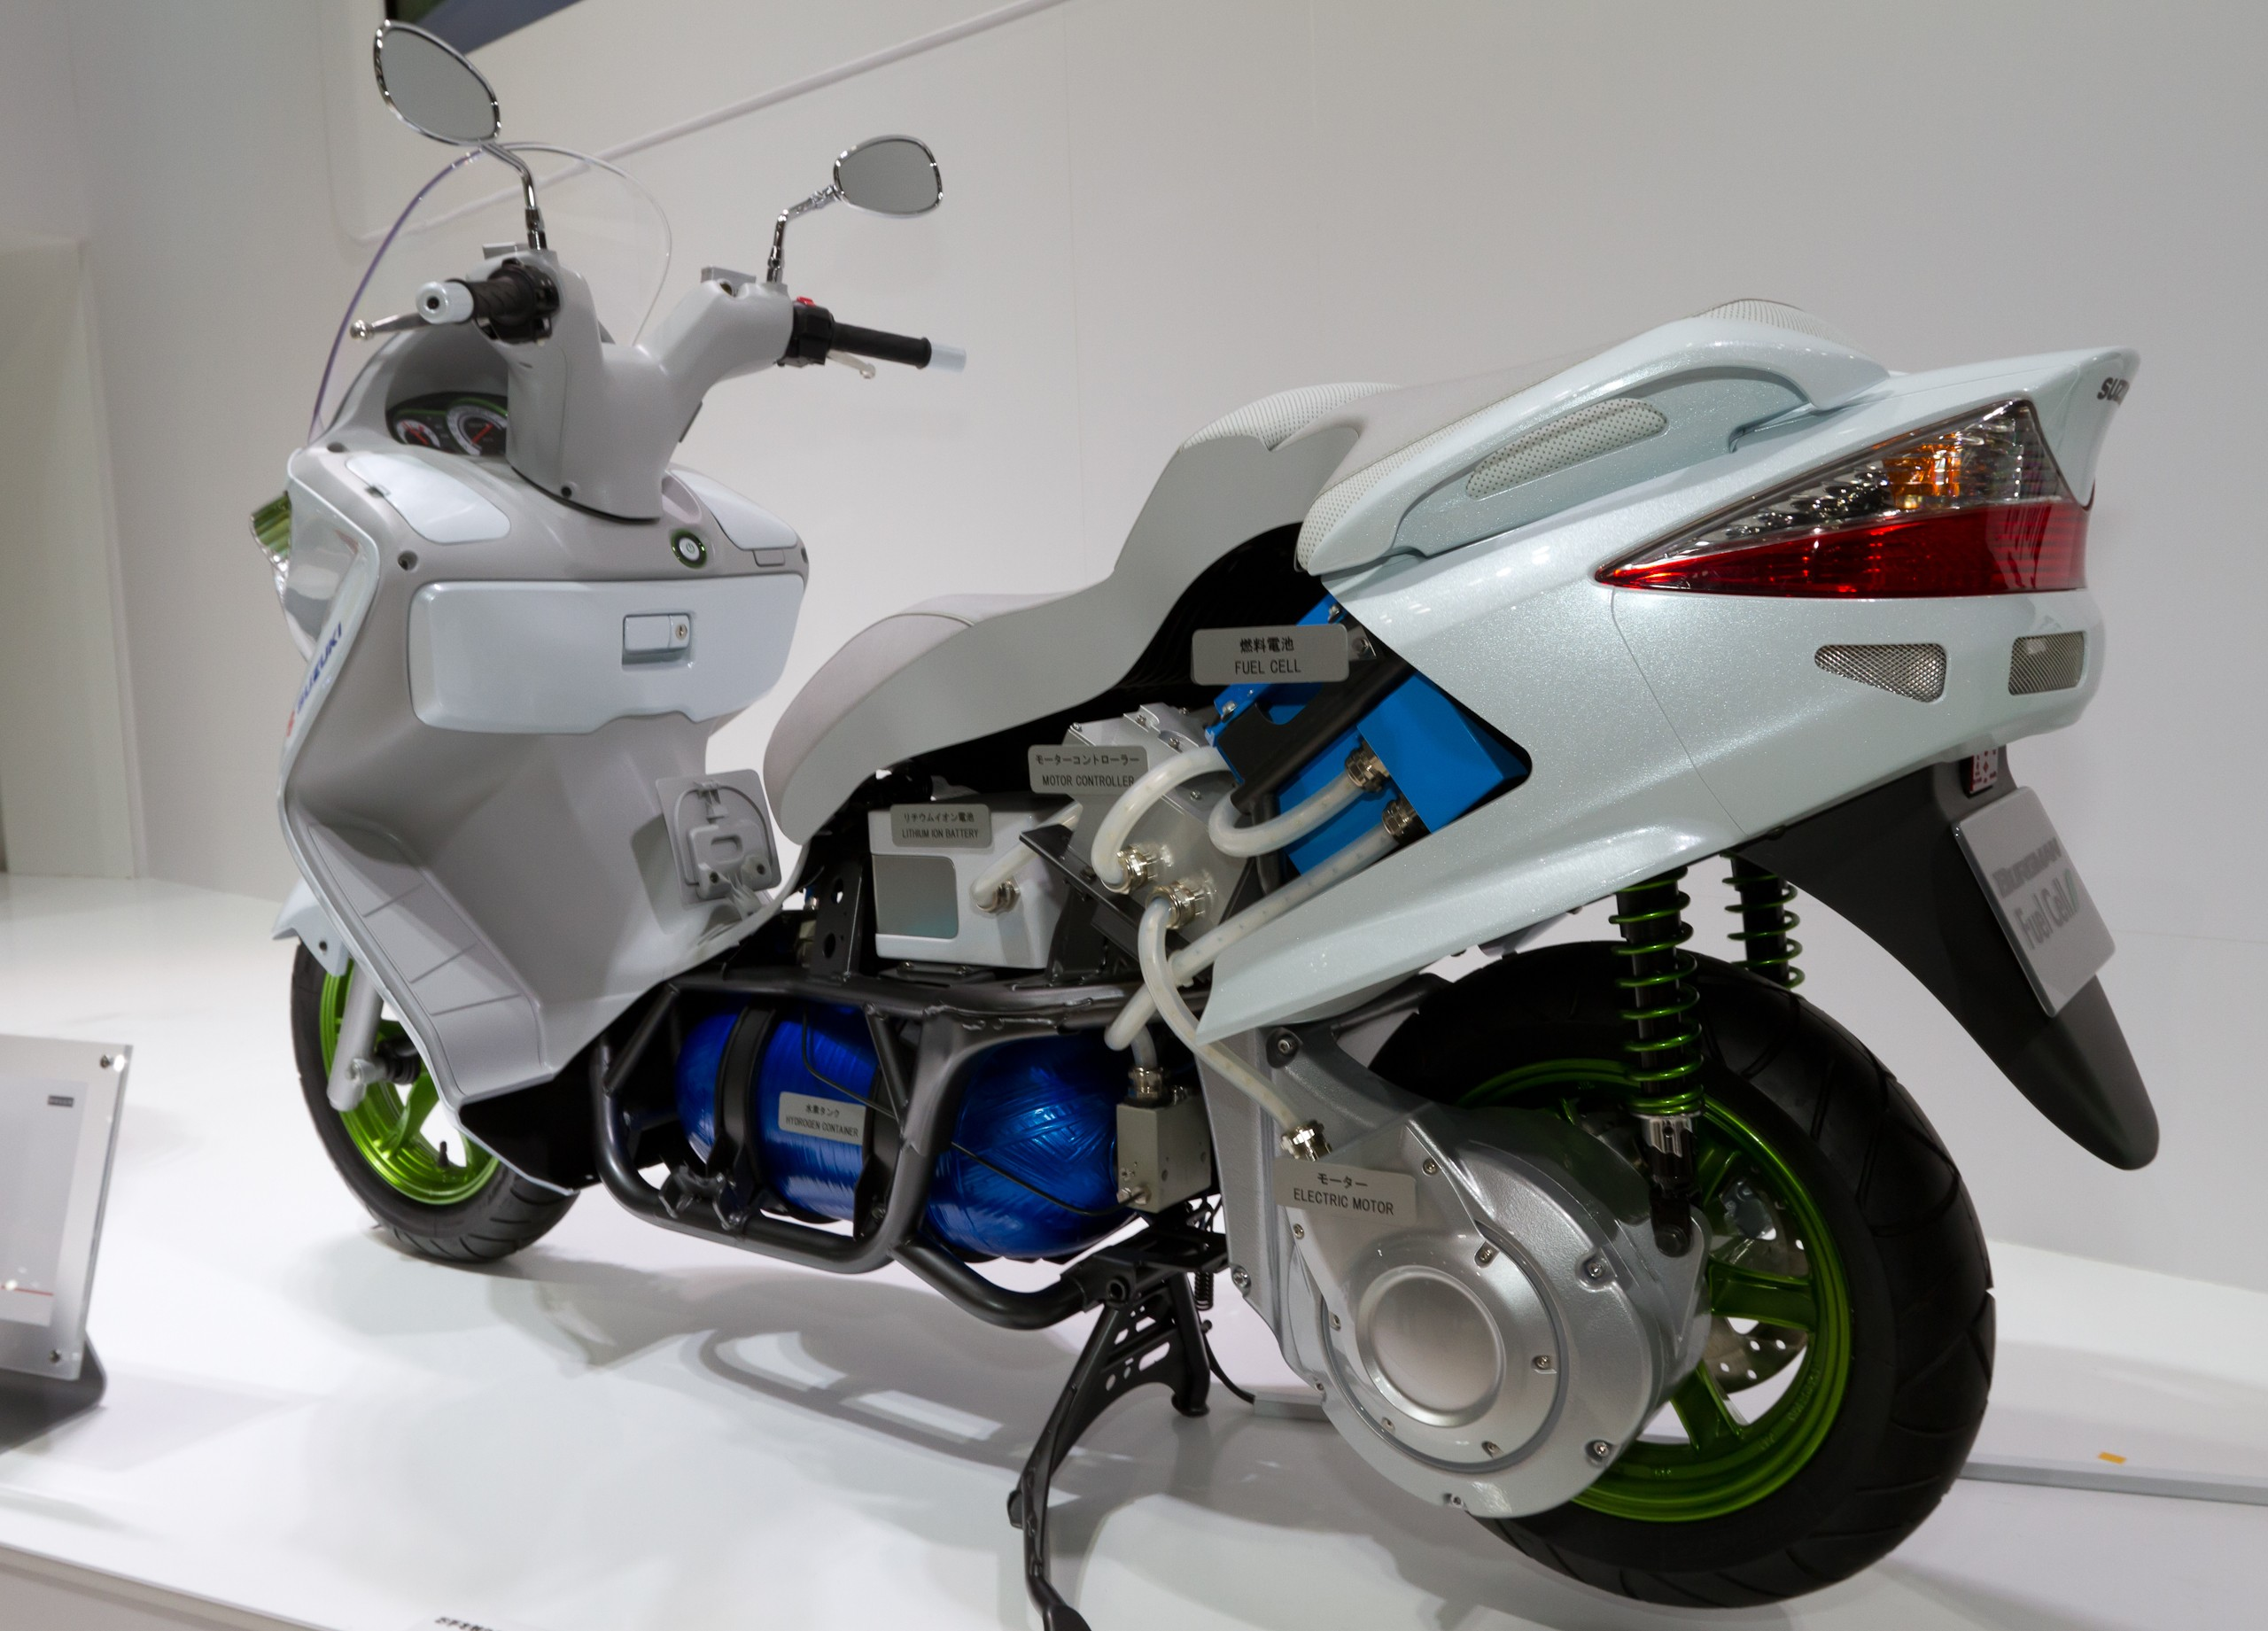 Electric Motorcycles And Scooters Wikipedia Wiring Diagram For Motorized Bicycle Suzuki Burgman Fuel Cell Prototype